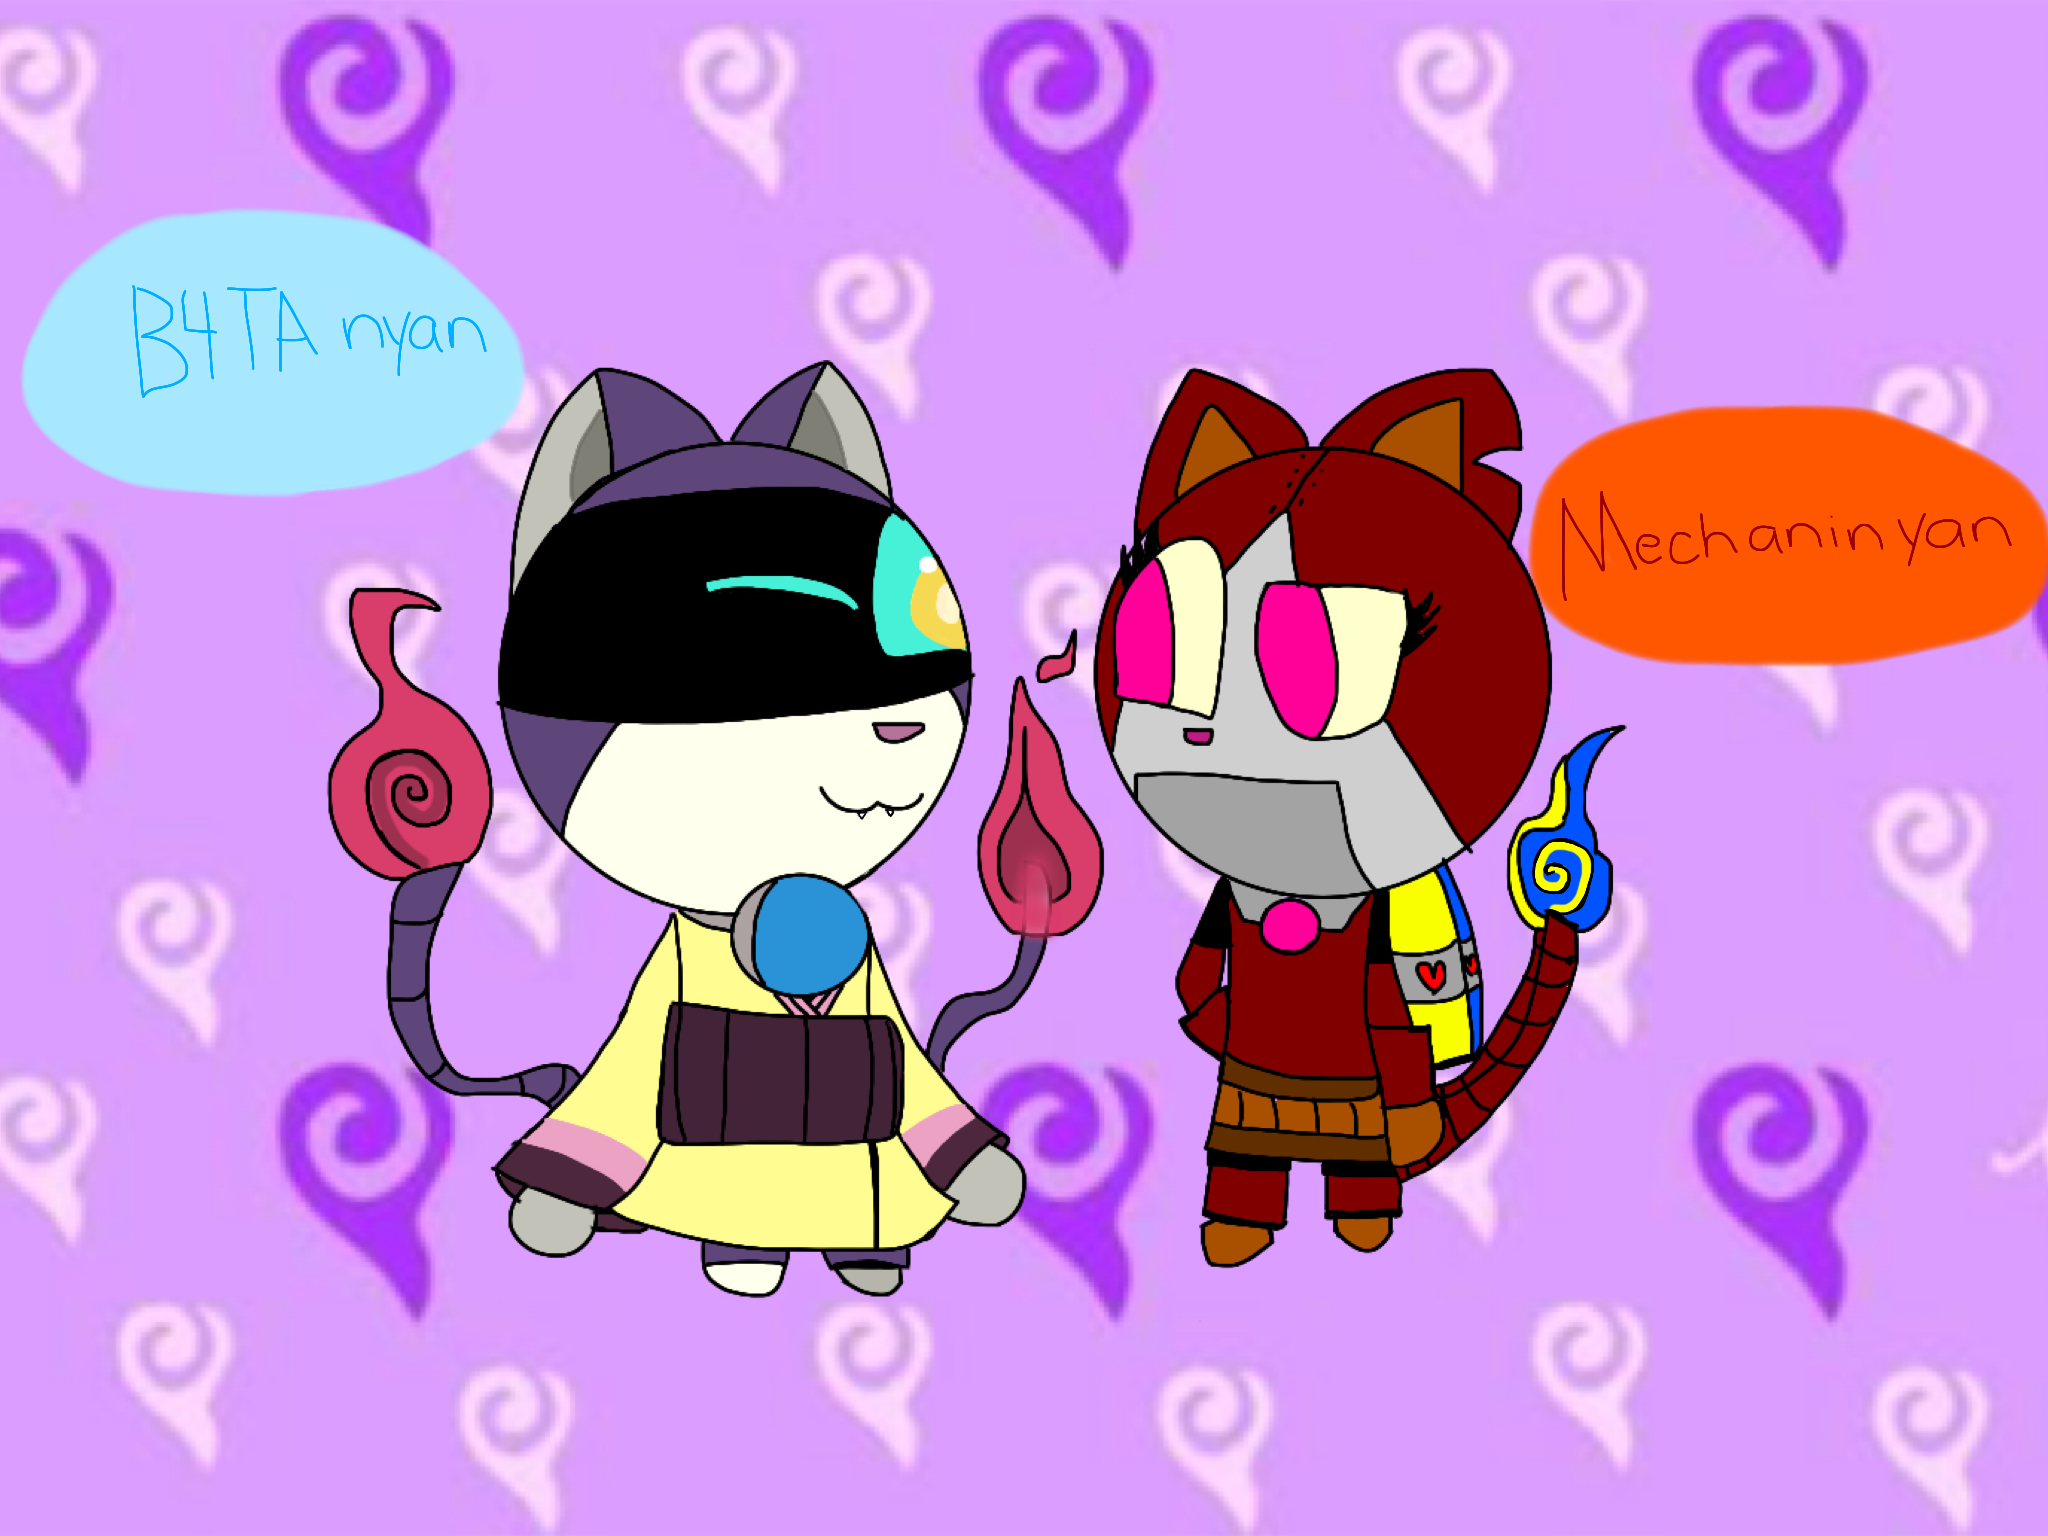 Gift- B4TA nyan and Mechaninyan by allyterry1002